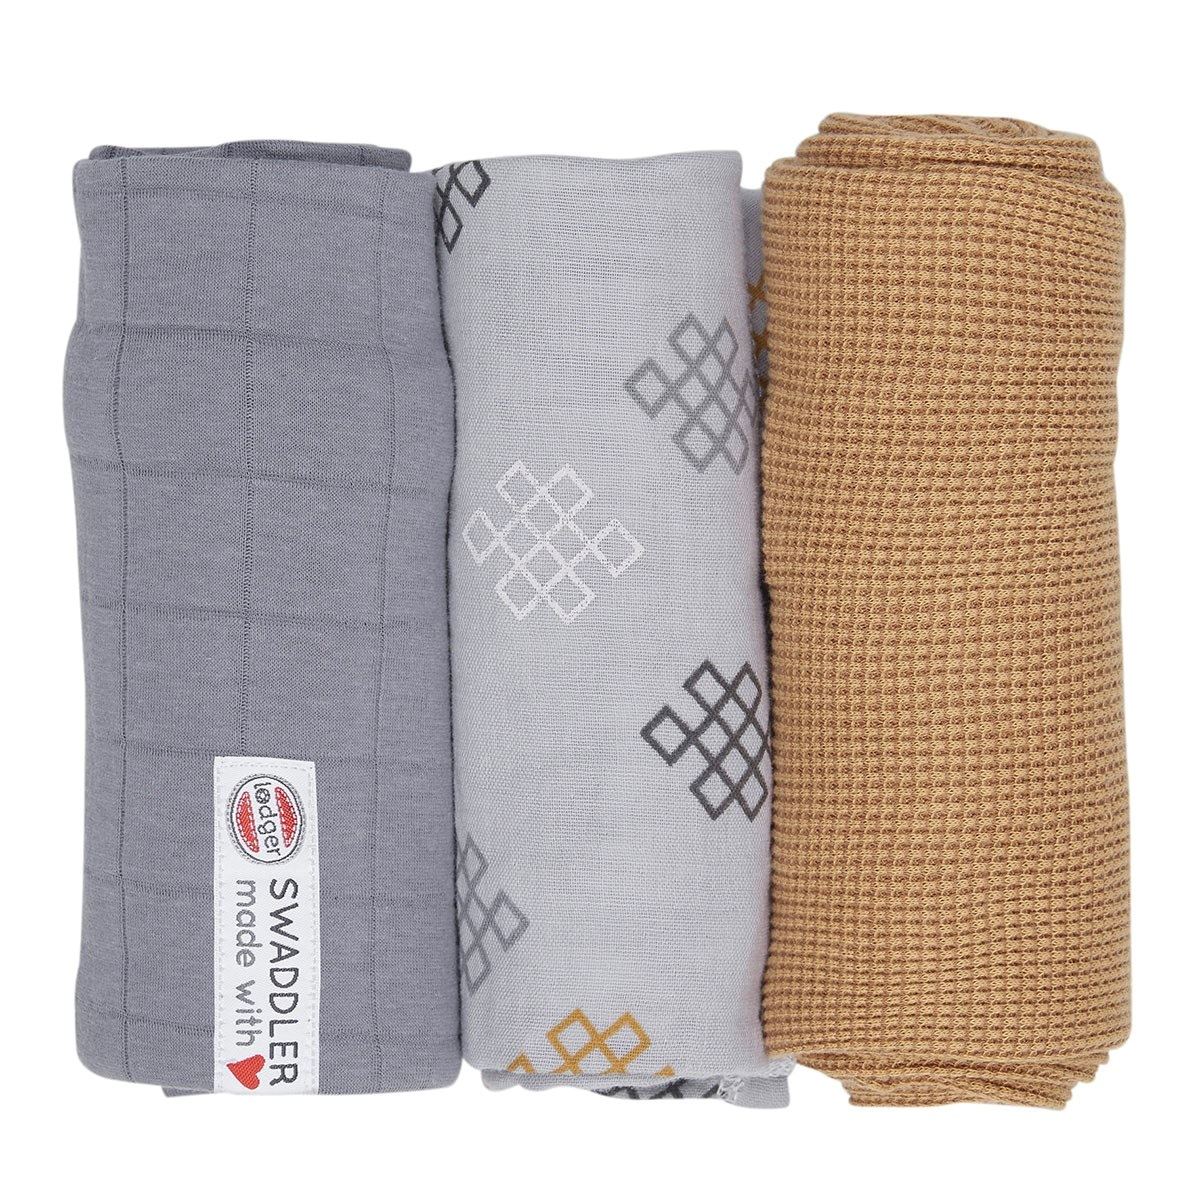 LODGER Plenky Swaddler Empire Knot 3 ks Donkey 70 x 70 cm